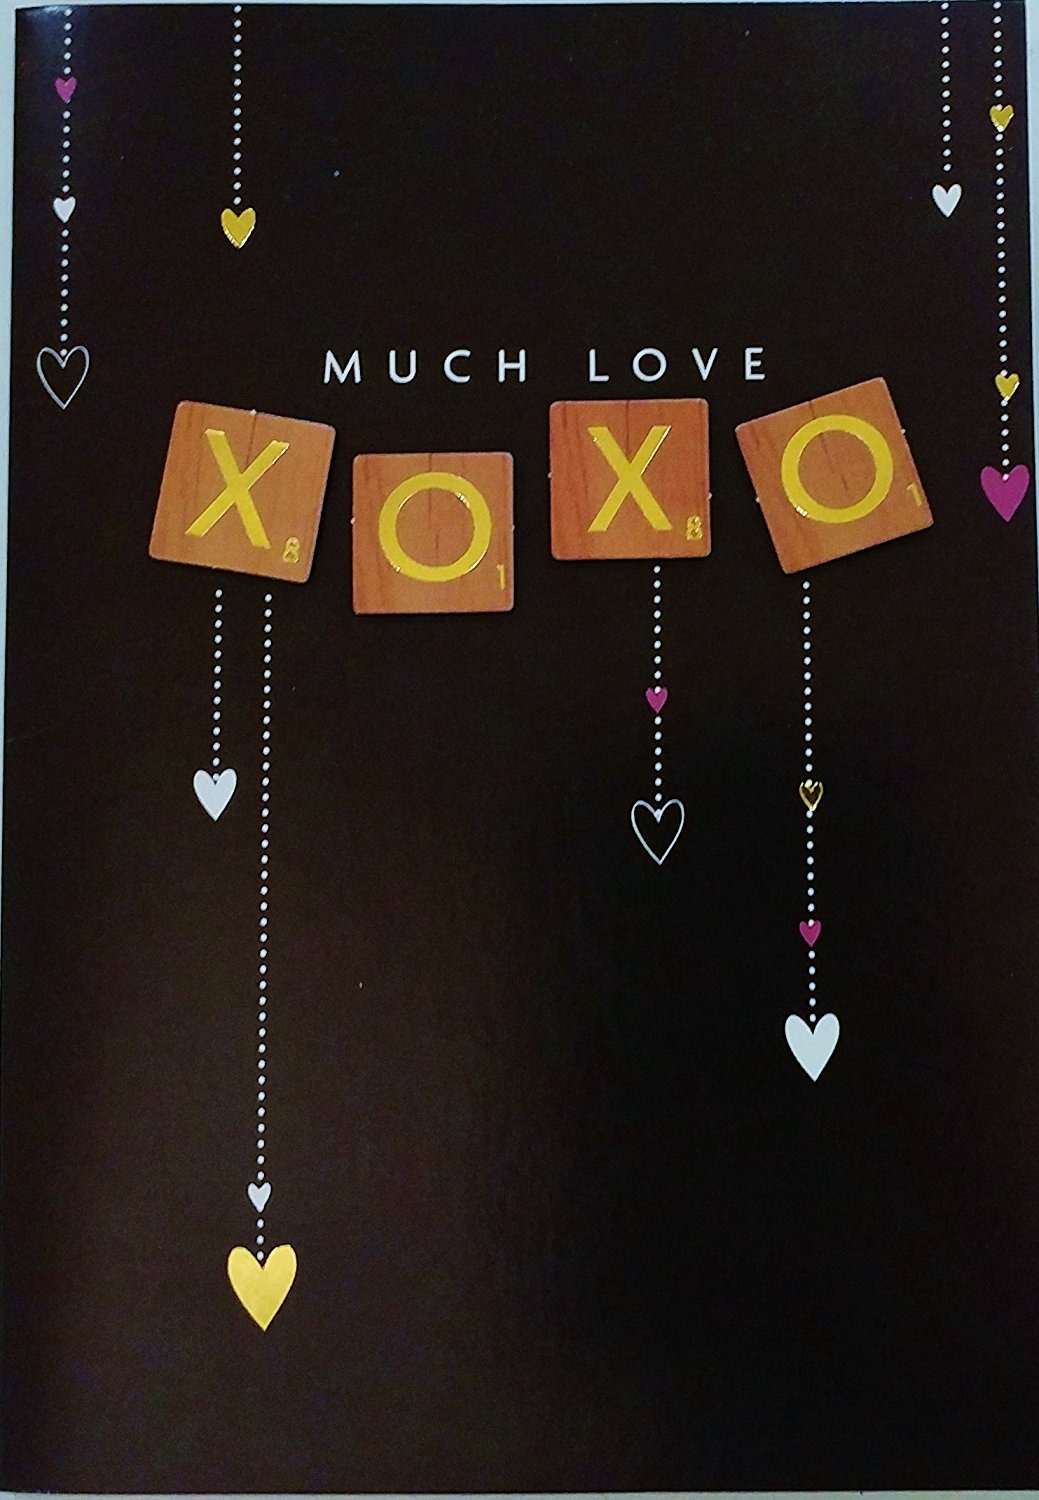 "Much Love XOXO - ""There's nothing I want more than to share this Valentine's Day with You!"" - Premium Greeting Card (Husband Wife Boyfriend Girlfriend)"